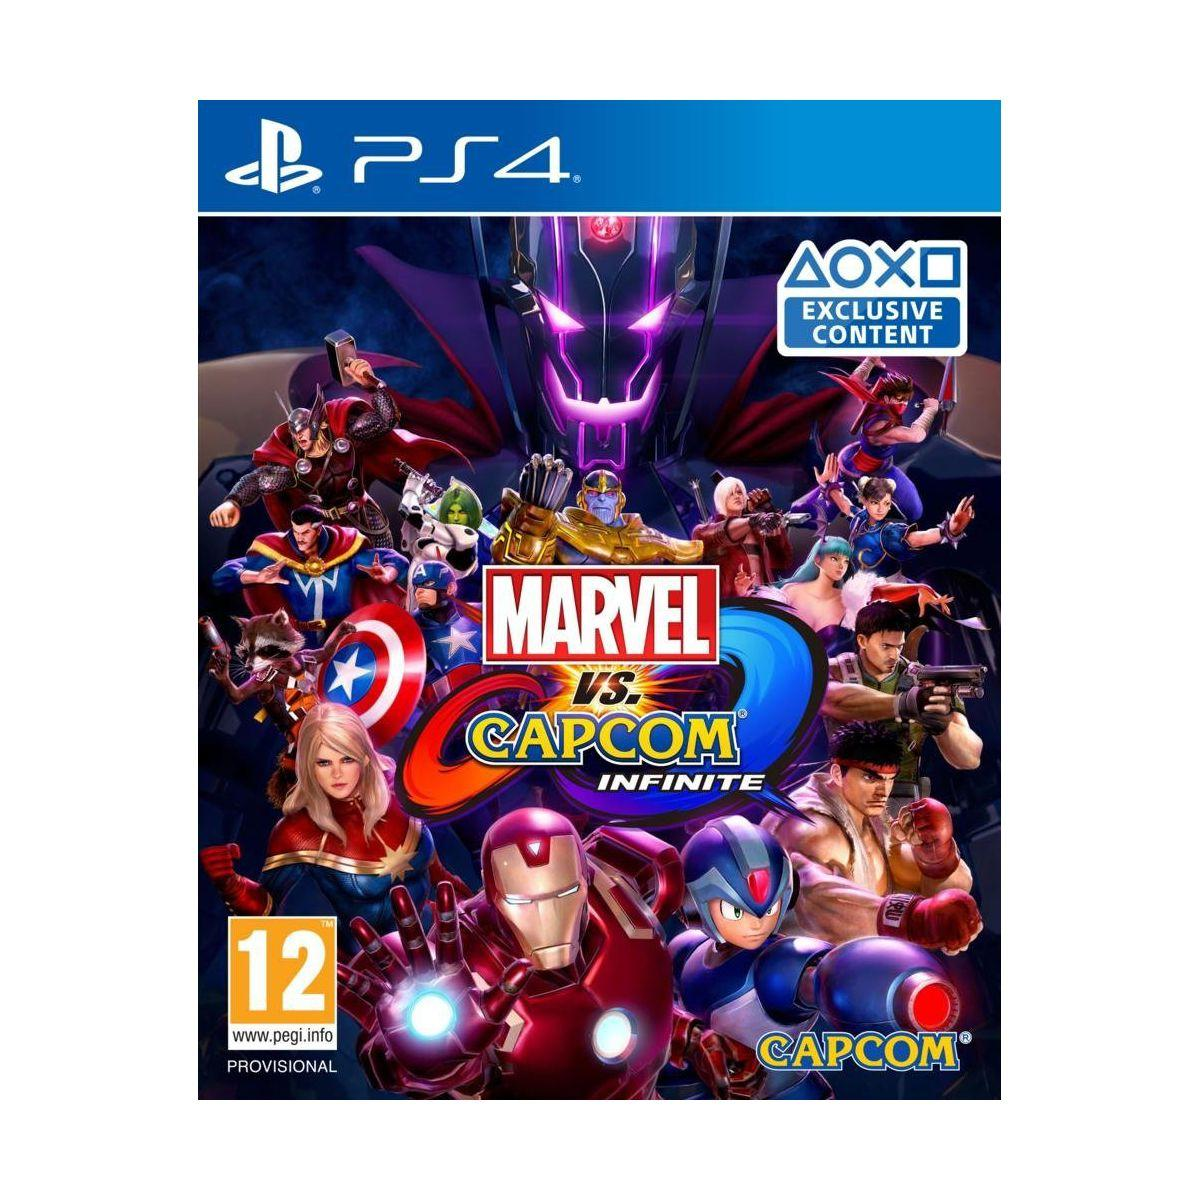 Jeu ps4 capcom marvel vs capcom infinite (photo)